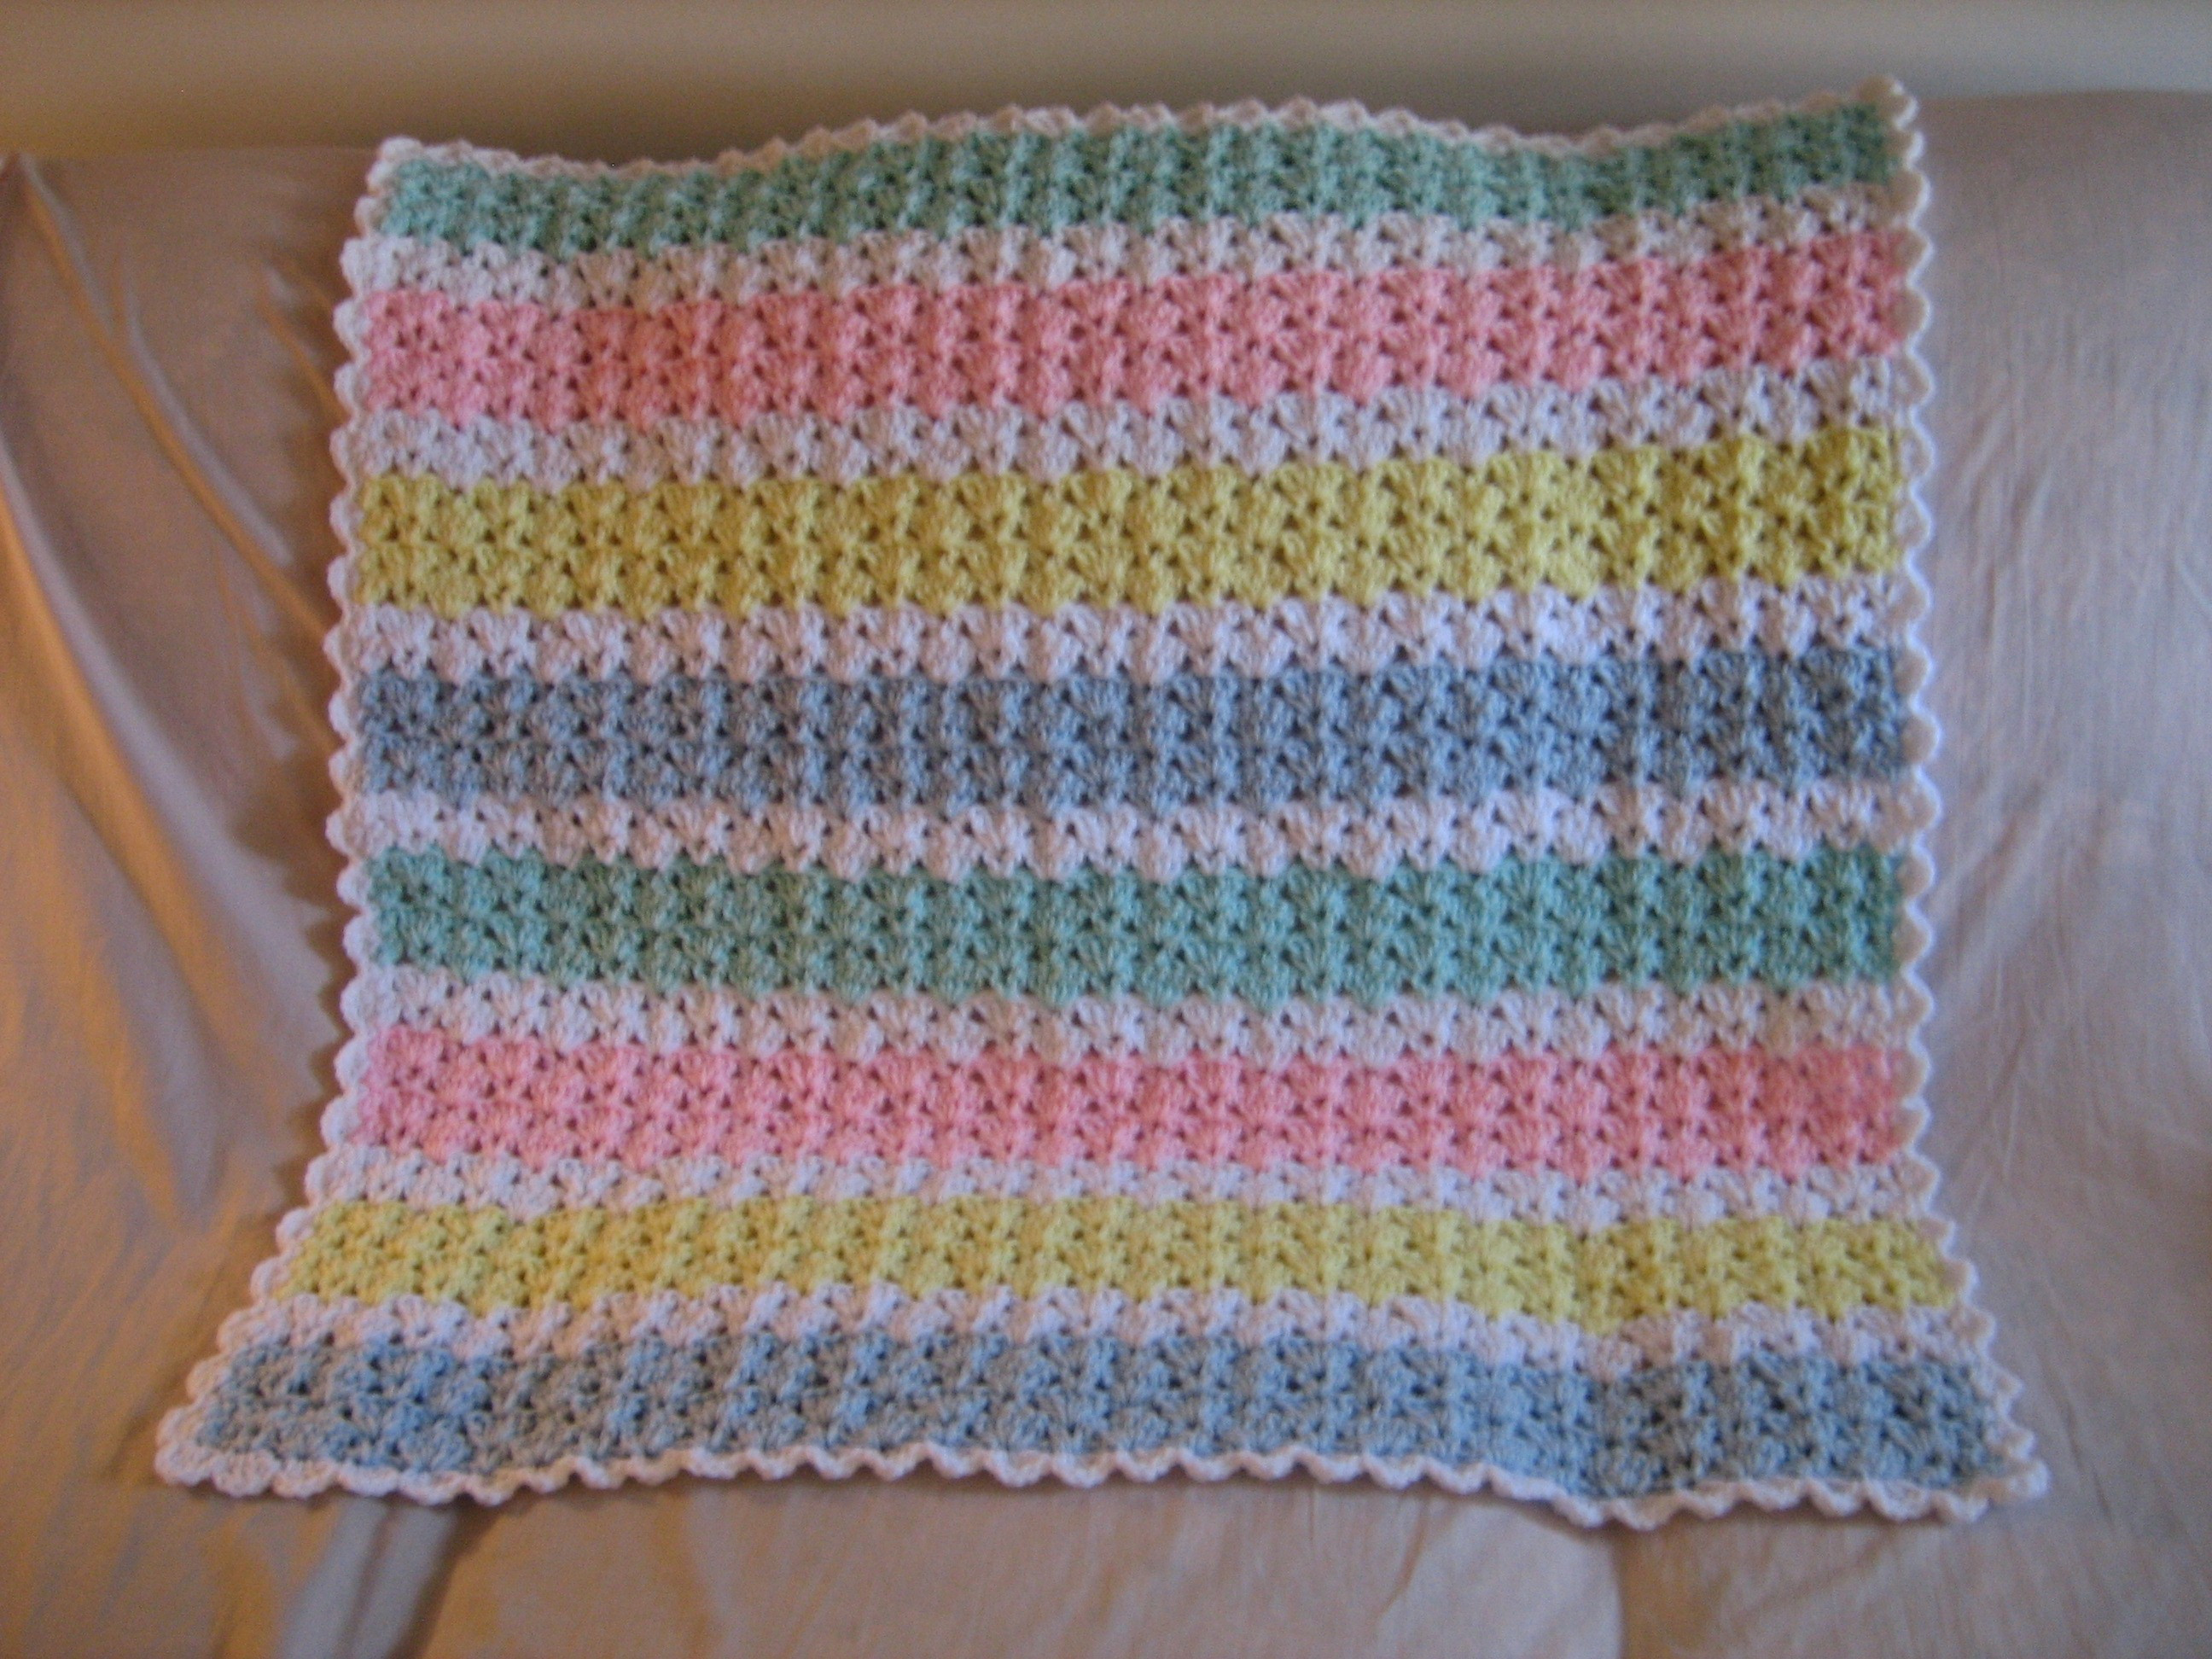 Free Knitted Baby Afghan Patterns Beautiful Free Knitting Patterns for Baby Blankets Afghans Of Superb 43 Pics Free Knitted Baby Afghan Patterns